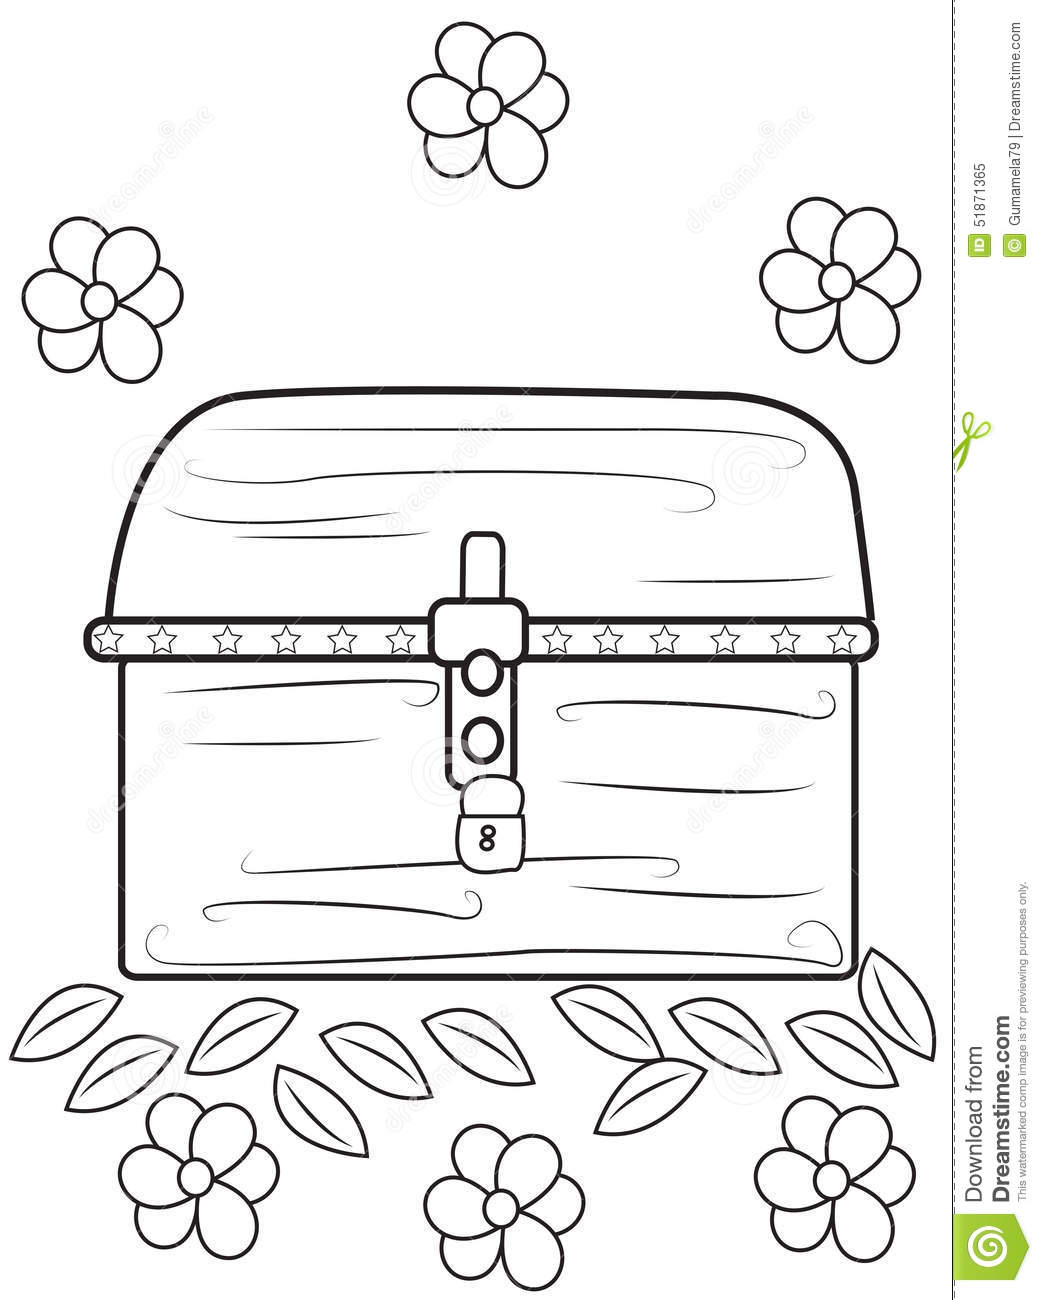 Treasure Chest Coloring Page Stock Illustration